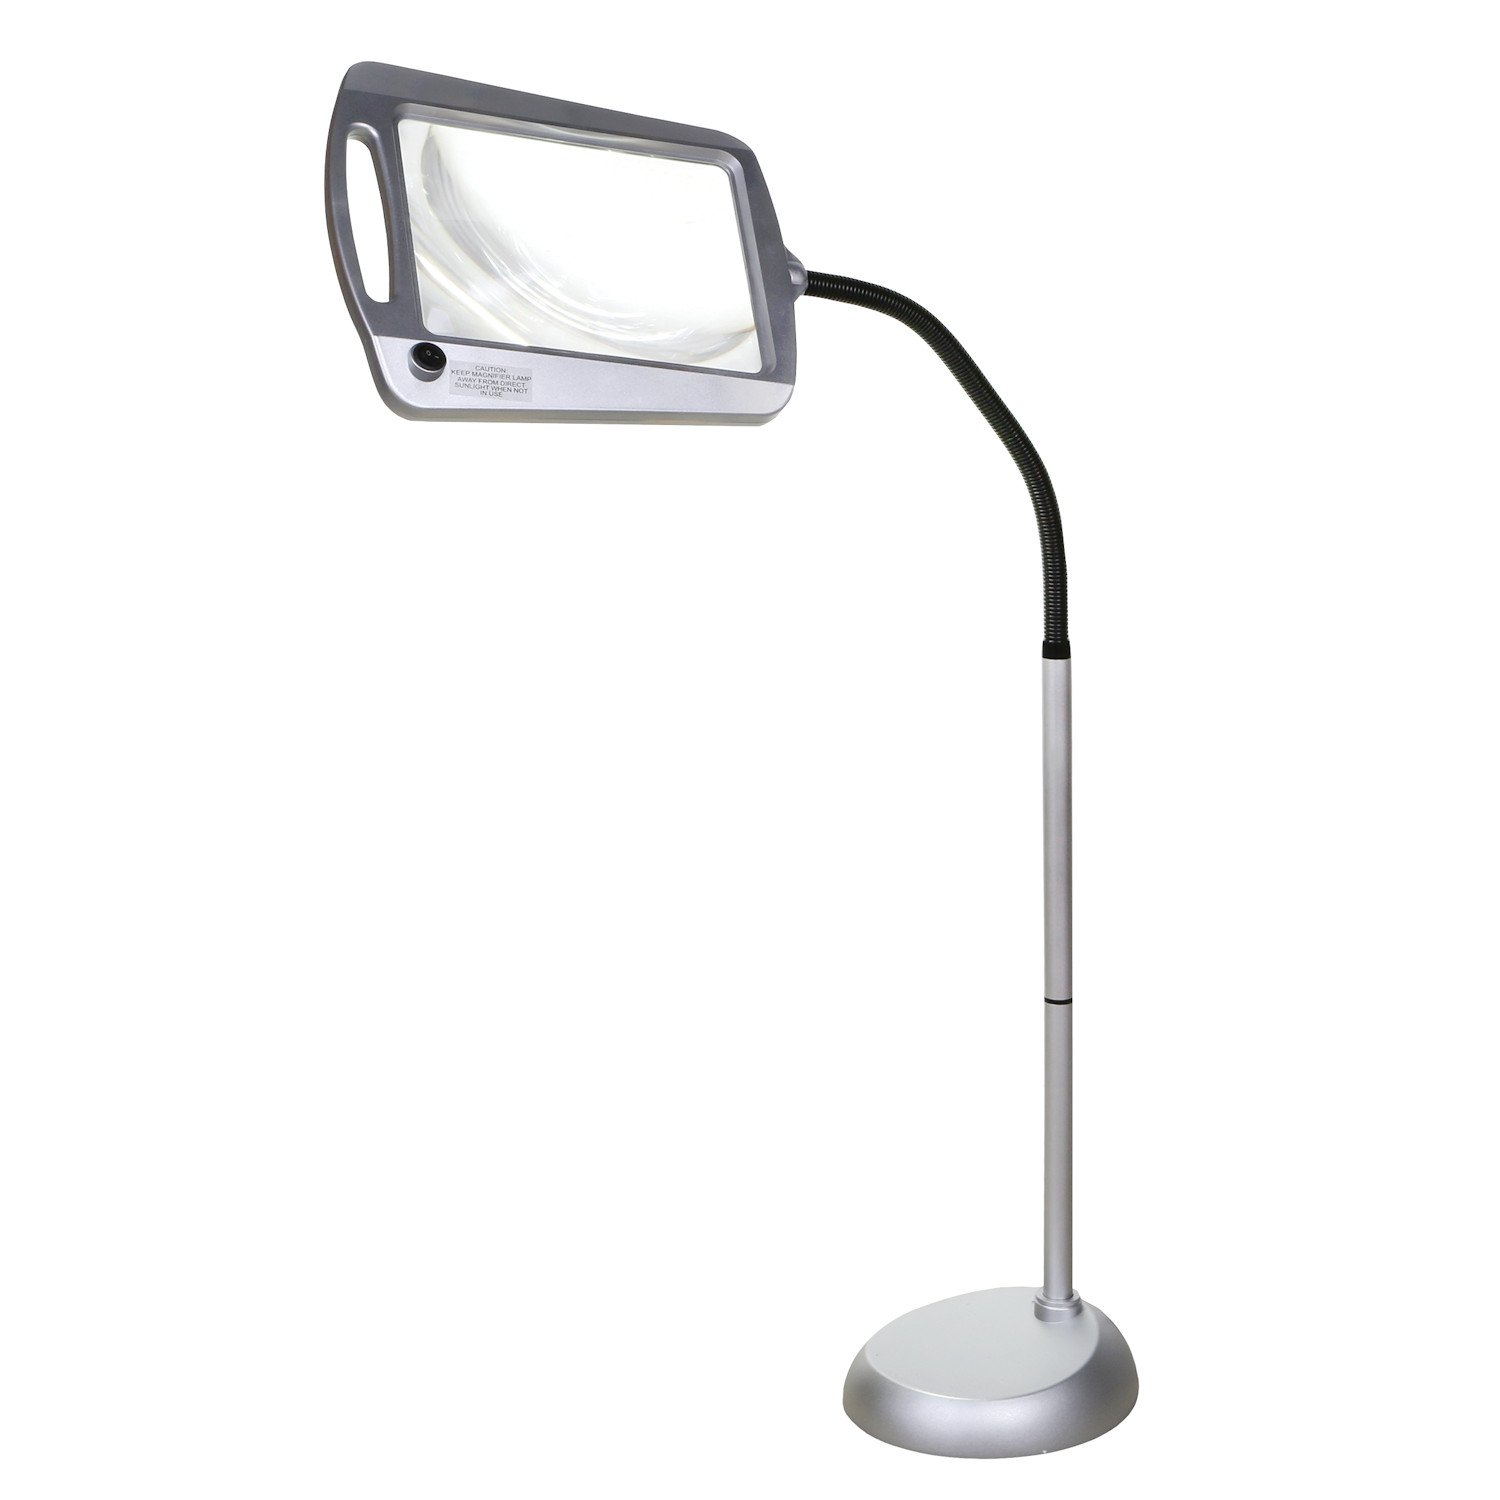 Full-Page Floor Magnifying Lamp - Silver by Simpla